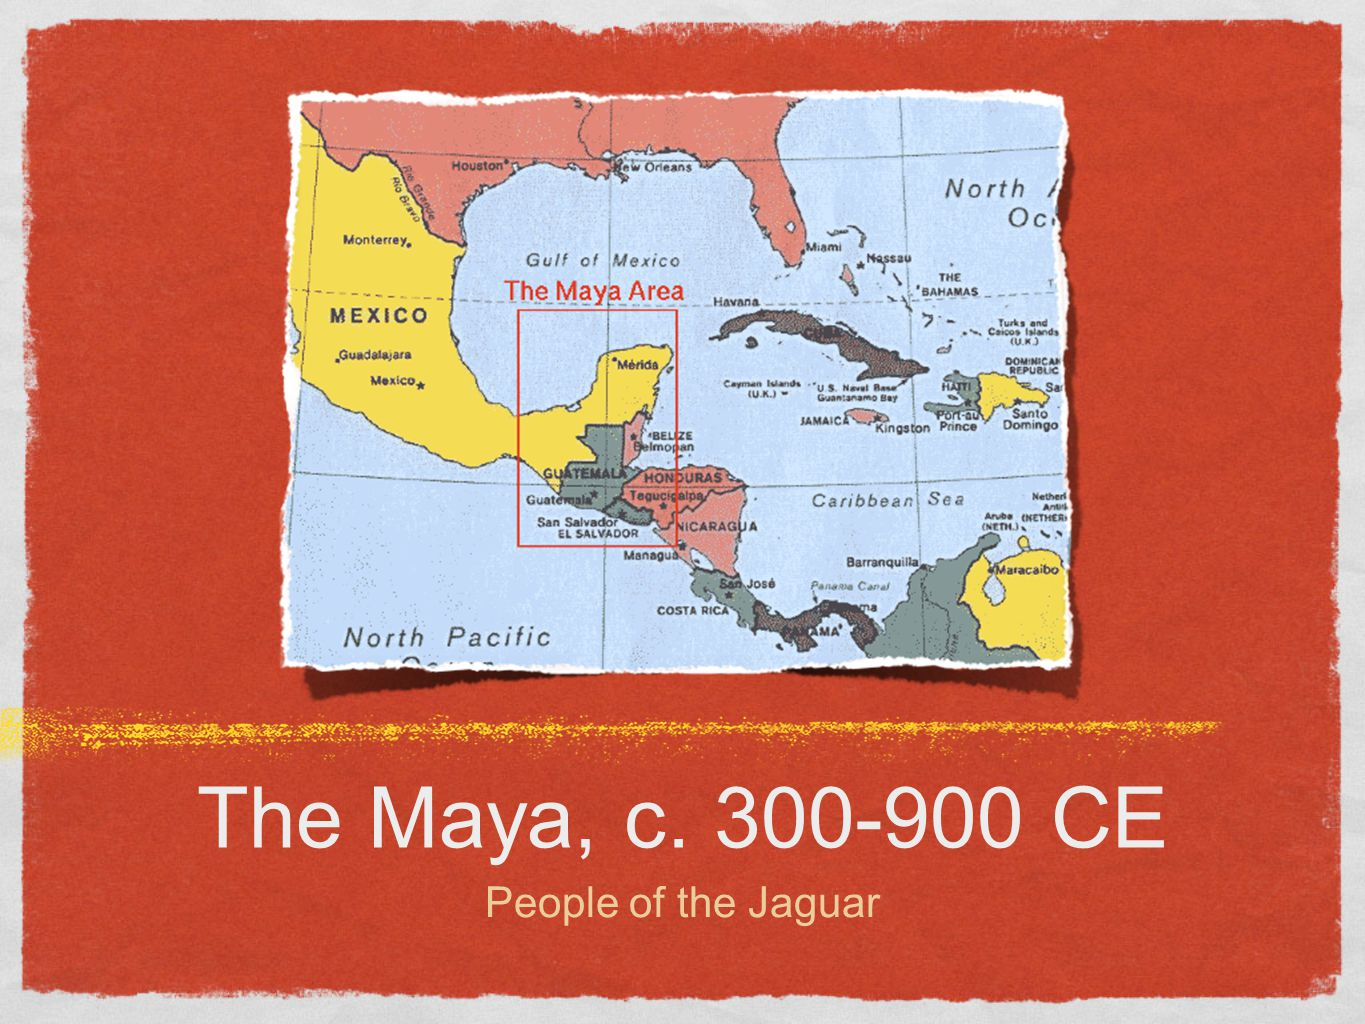 The Maya, c. 300-900 CE People of the Jaguar